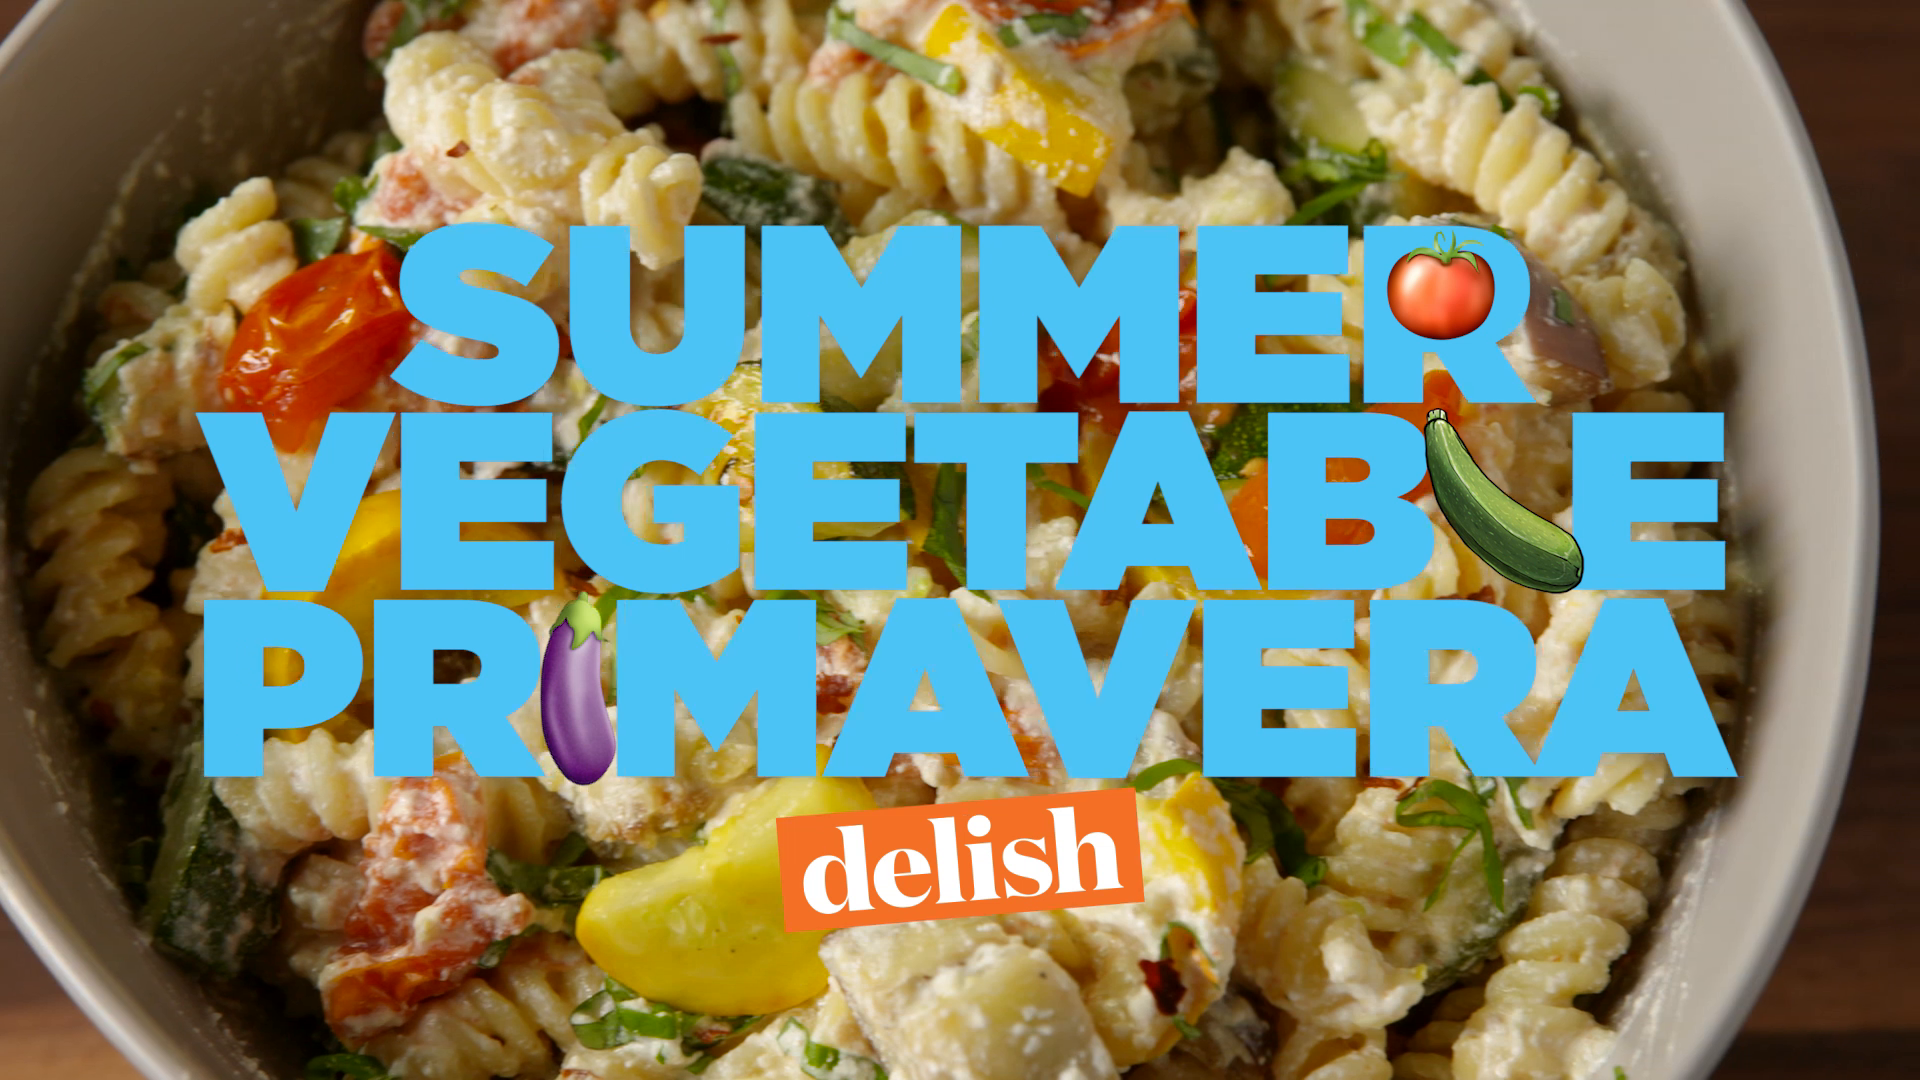 Summer Vegetable Pasta Primavera